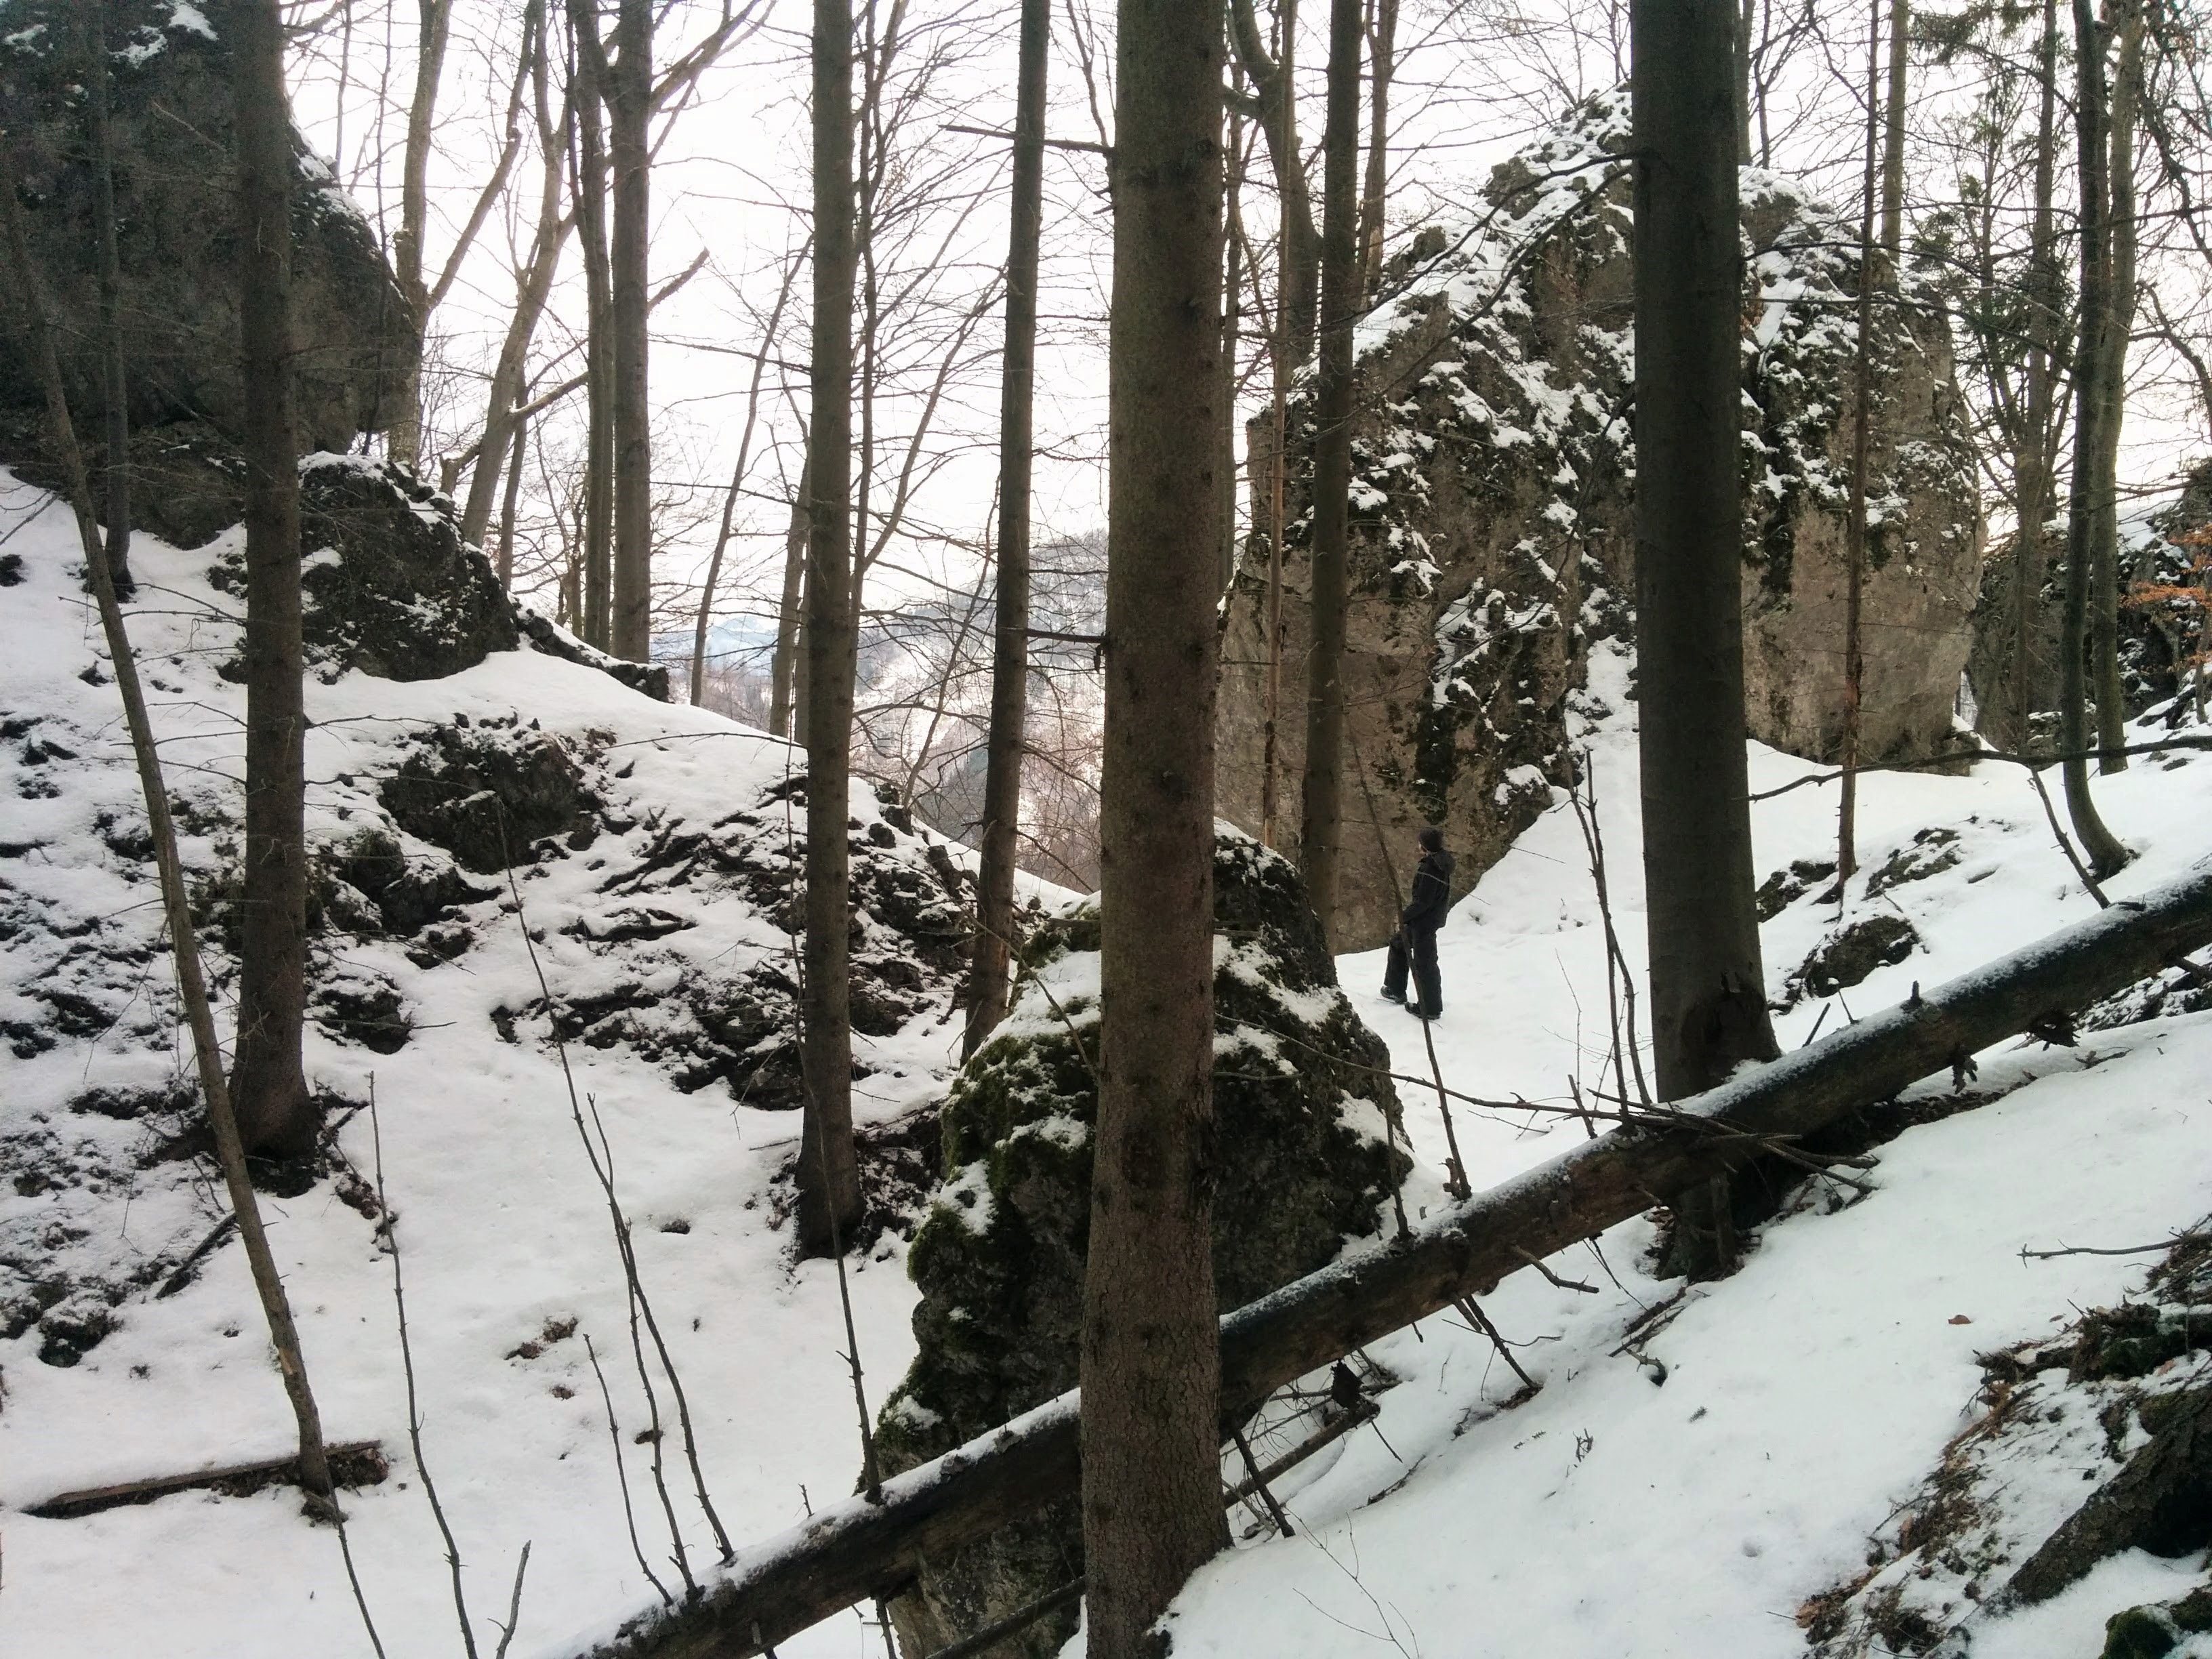 The top of Fintova. The hill is full of cliffs like this.